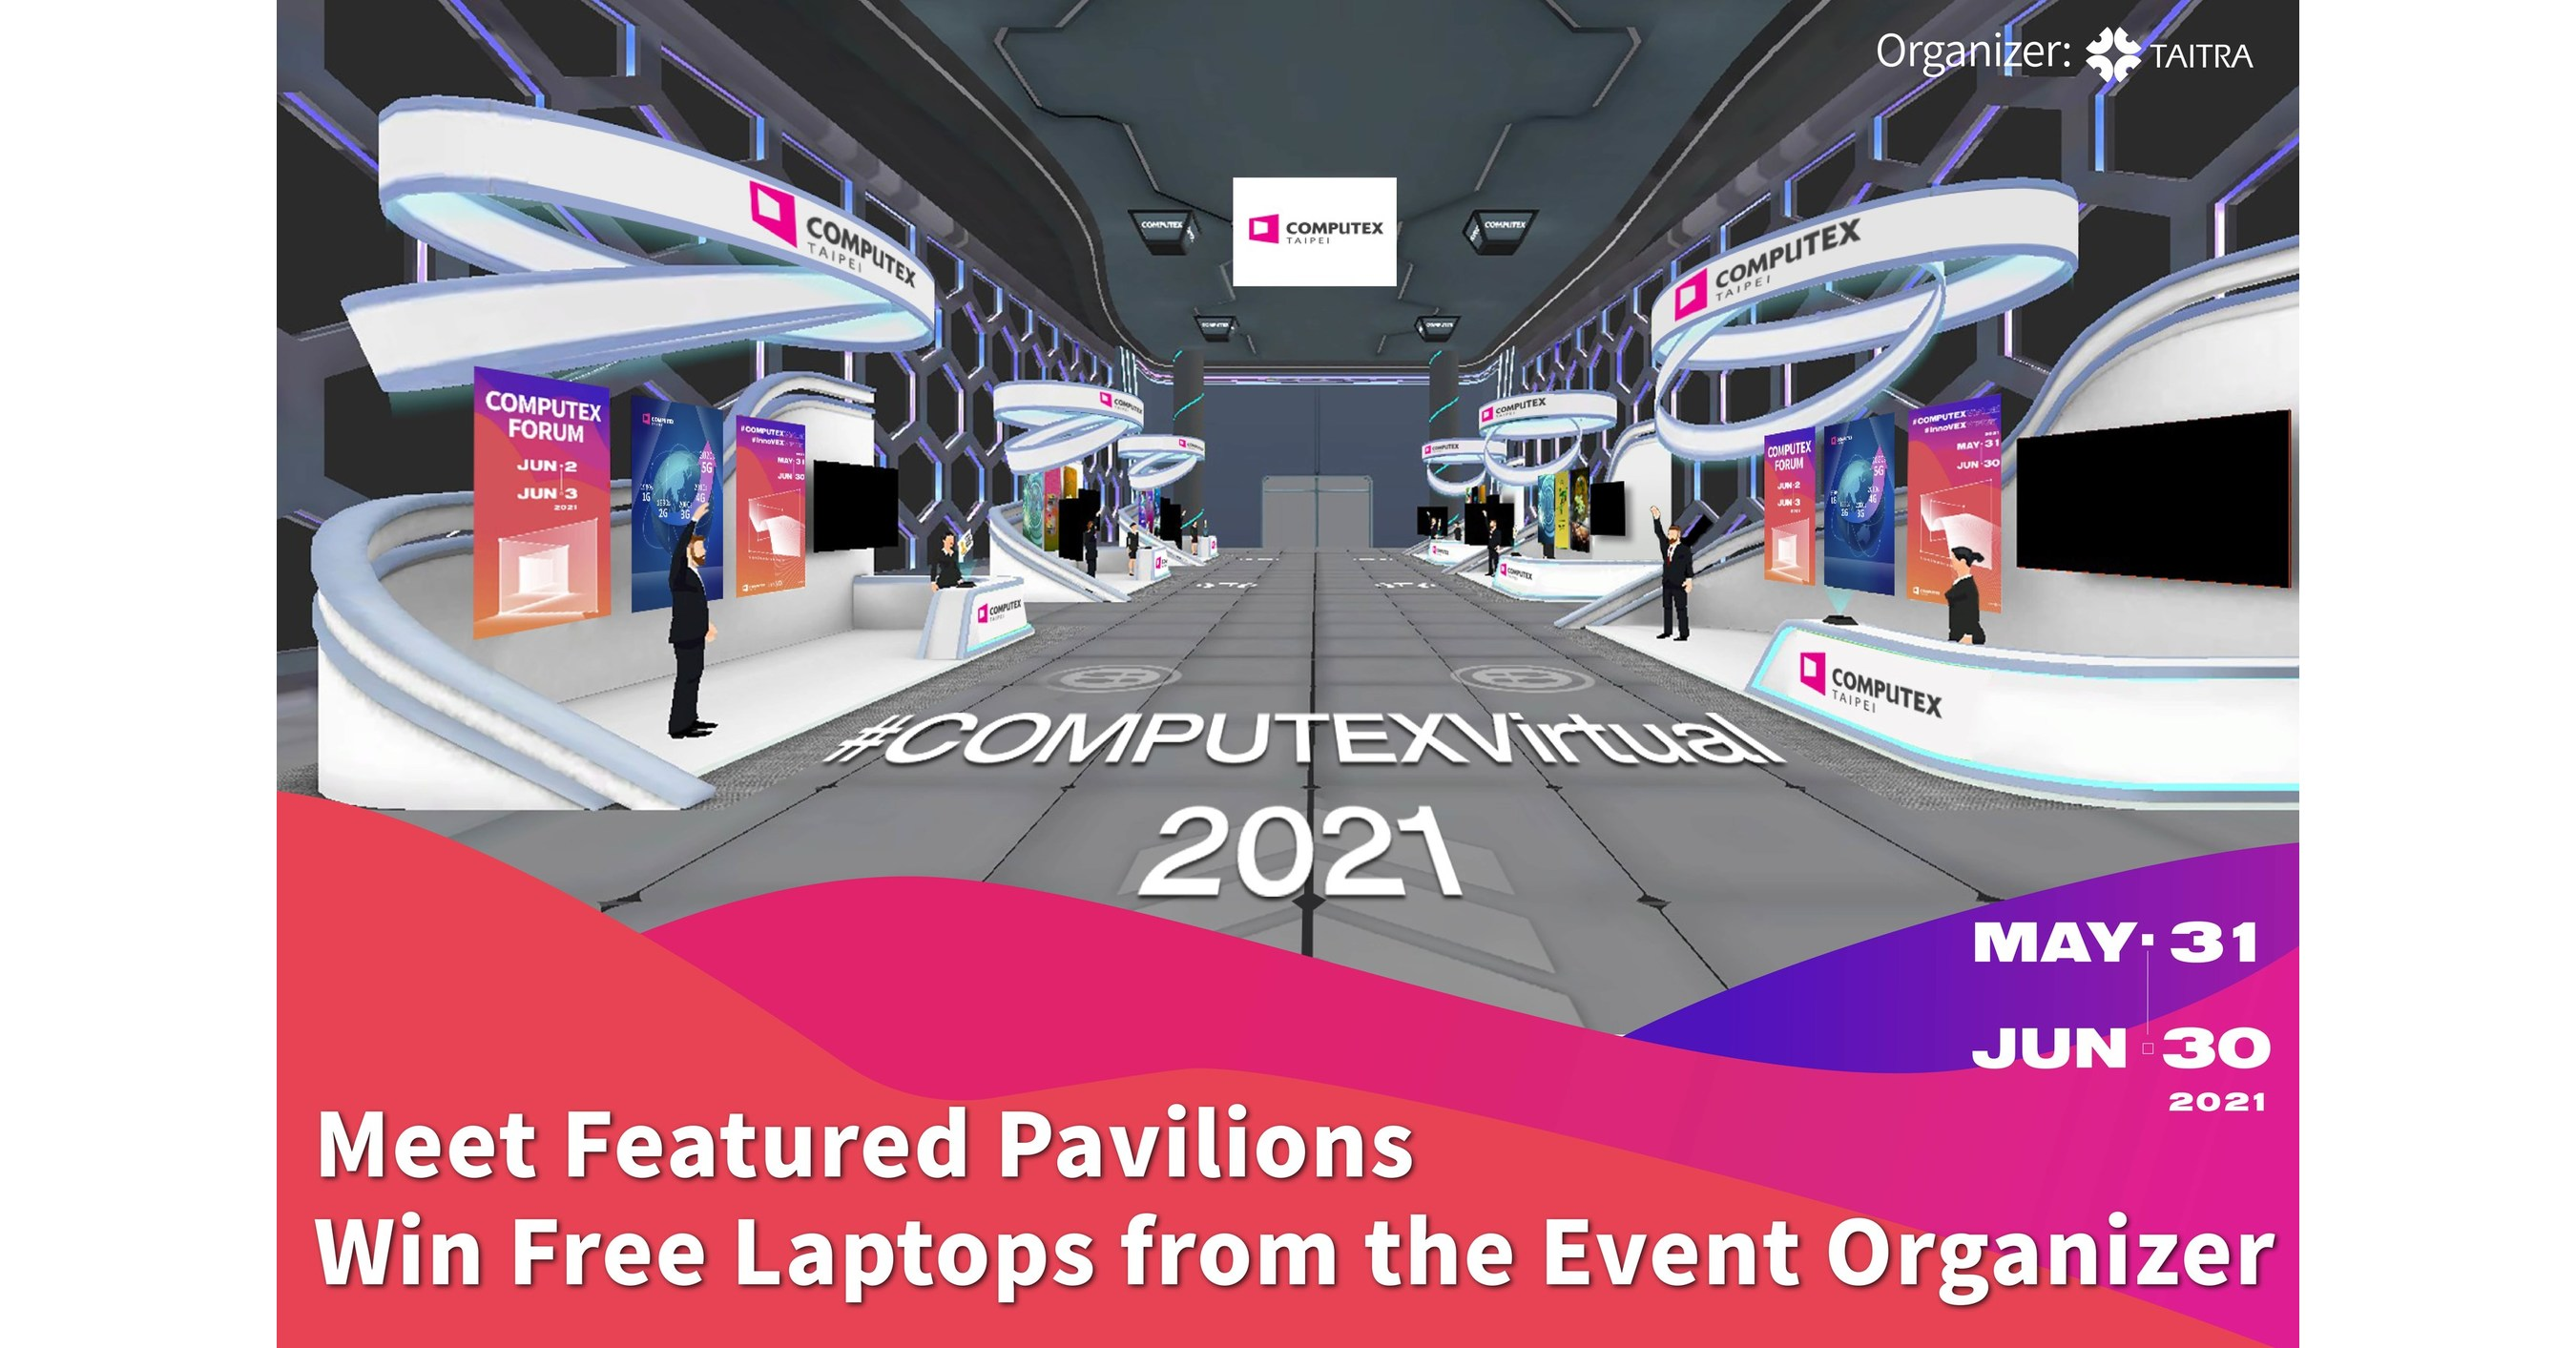 TAIPEI, June 21, 2021 /PRNewswire/ -- COMPUTEX 2021 Virtual is now livestreaming through June 30. The event organizer, TAITRA, has gathered leading companies from 34 countries to showcase the latest products and solutions through Virtual Display. Among the pa…